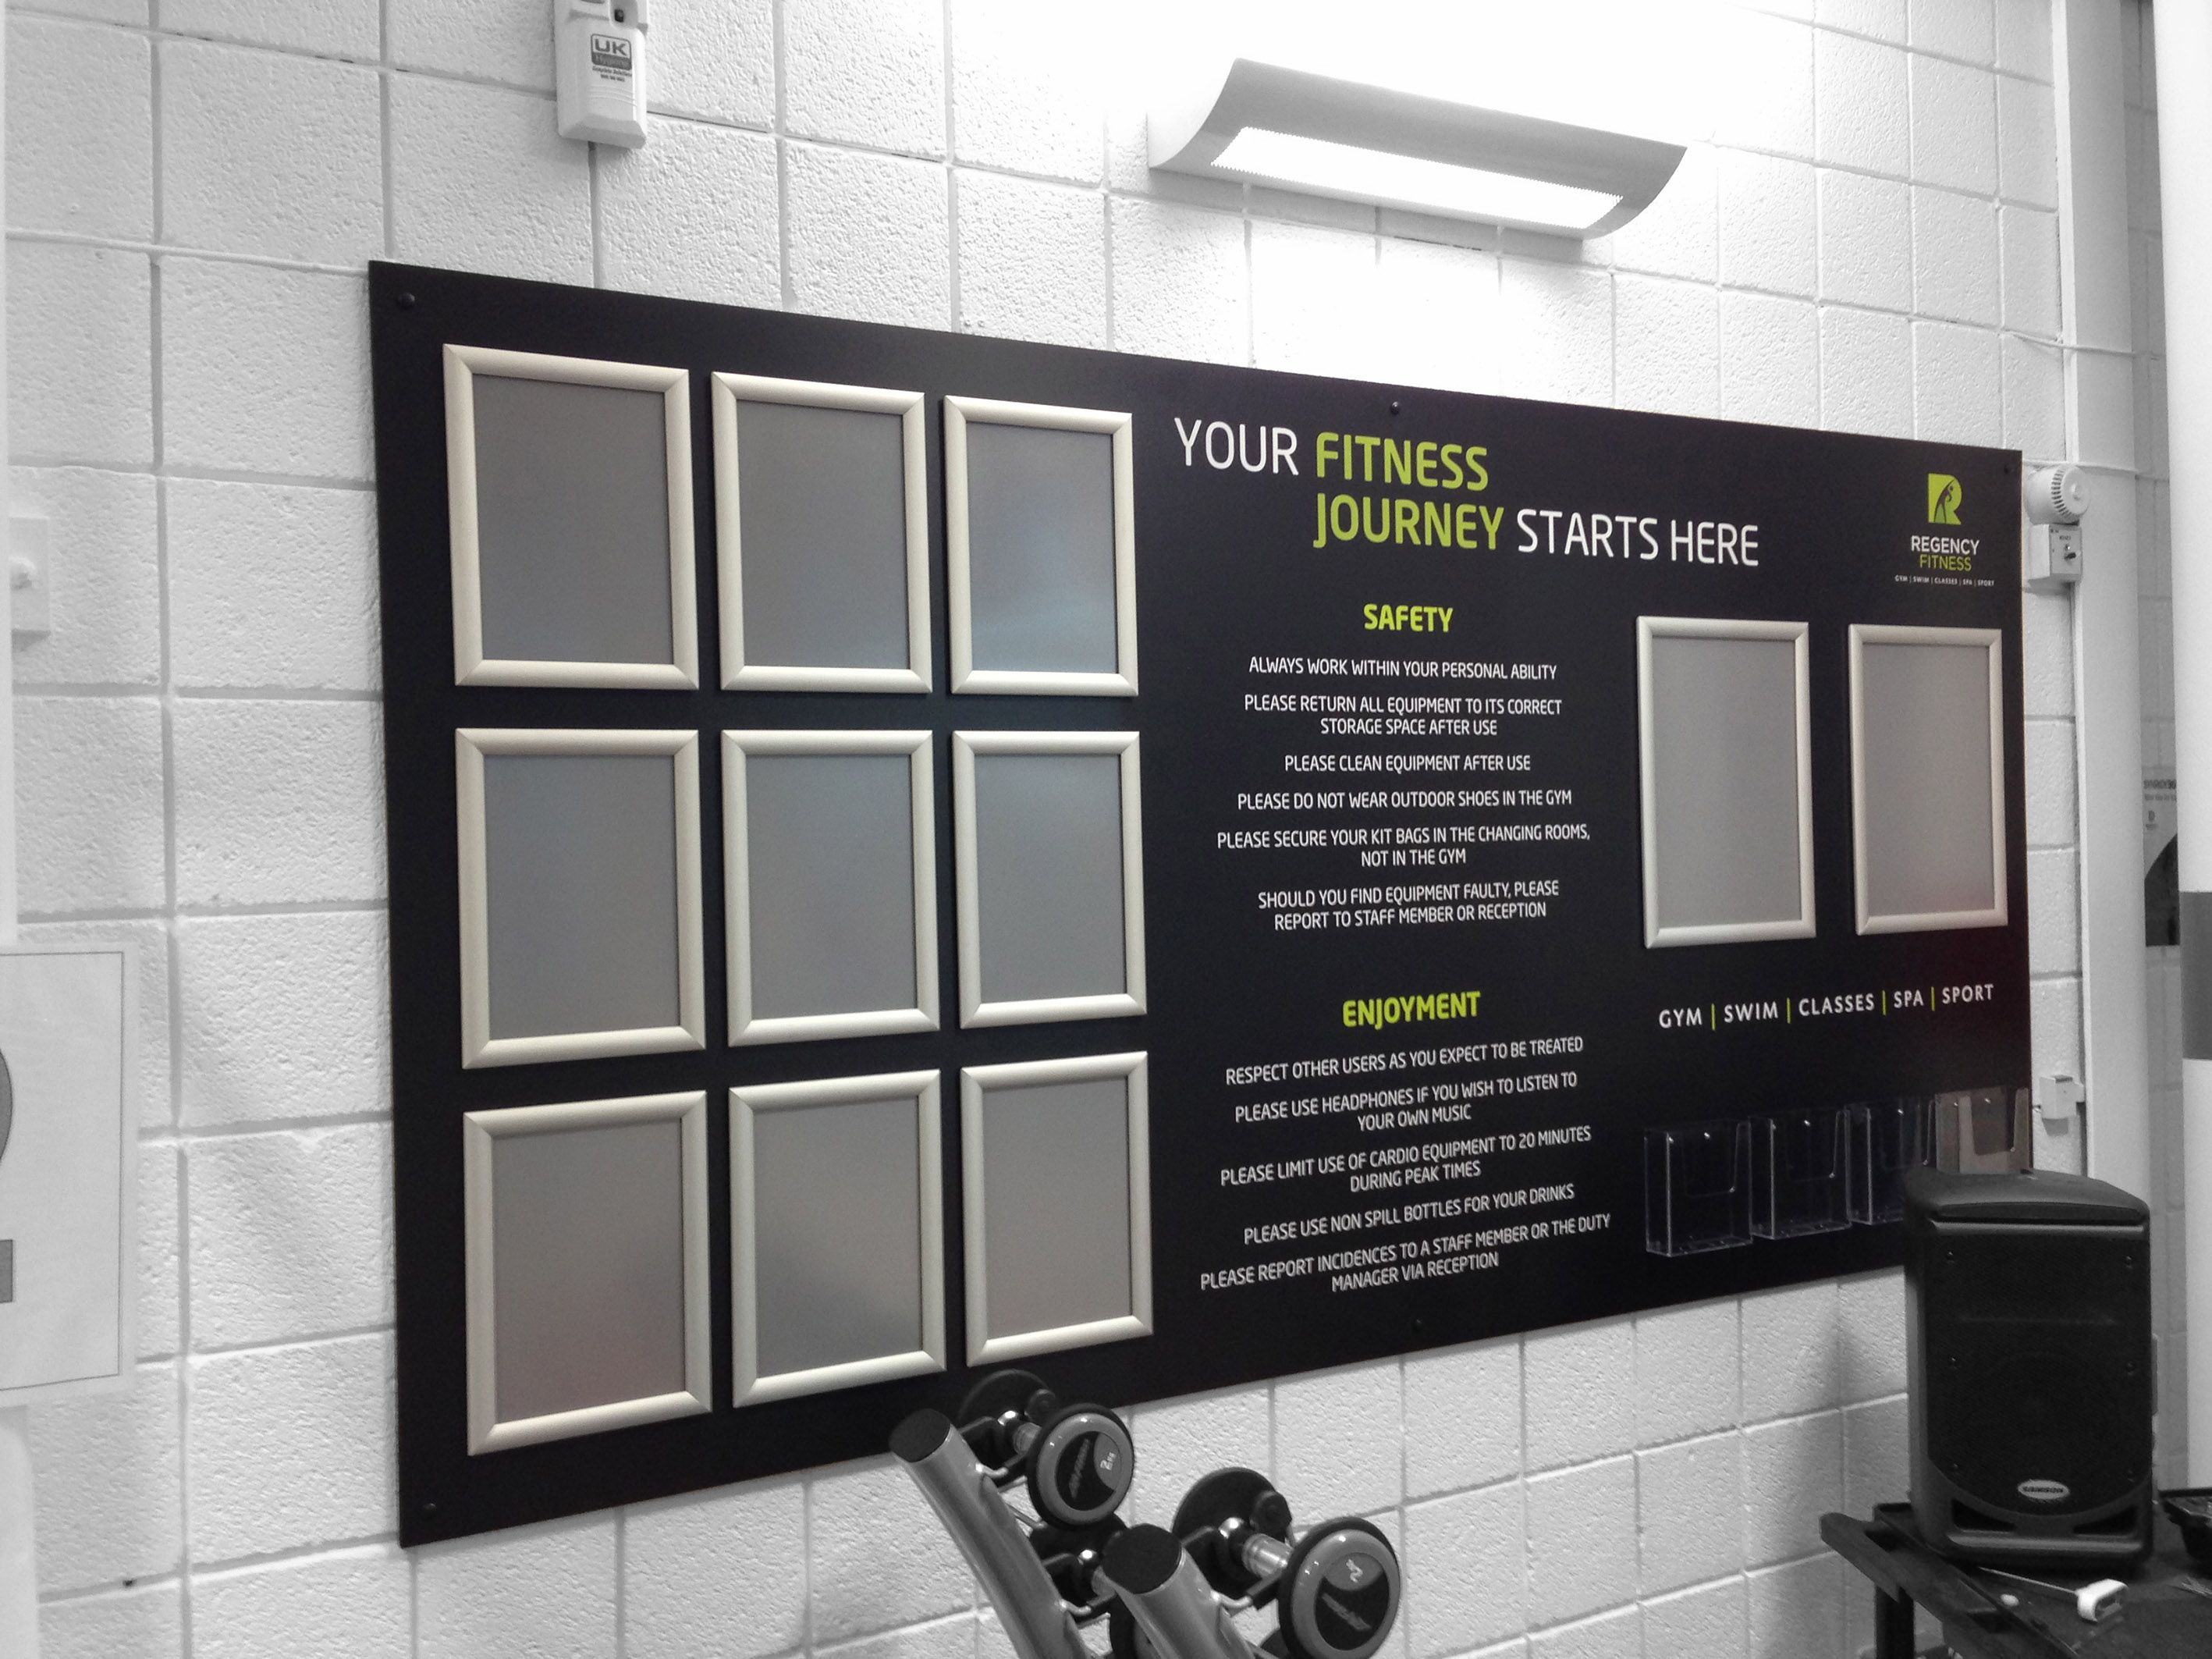 Regency fitness noticeboard with printed permanent